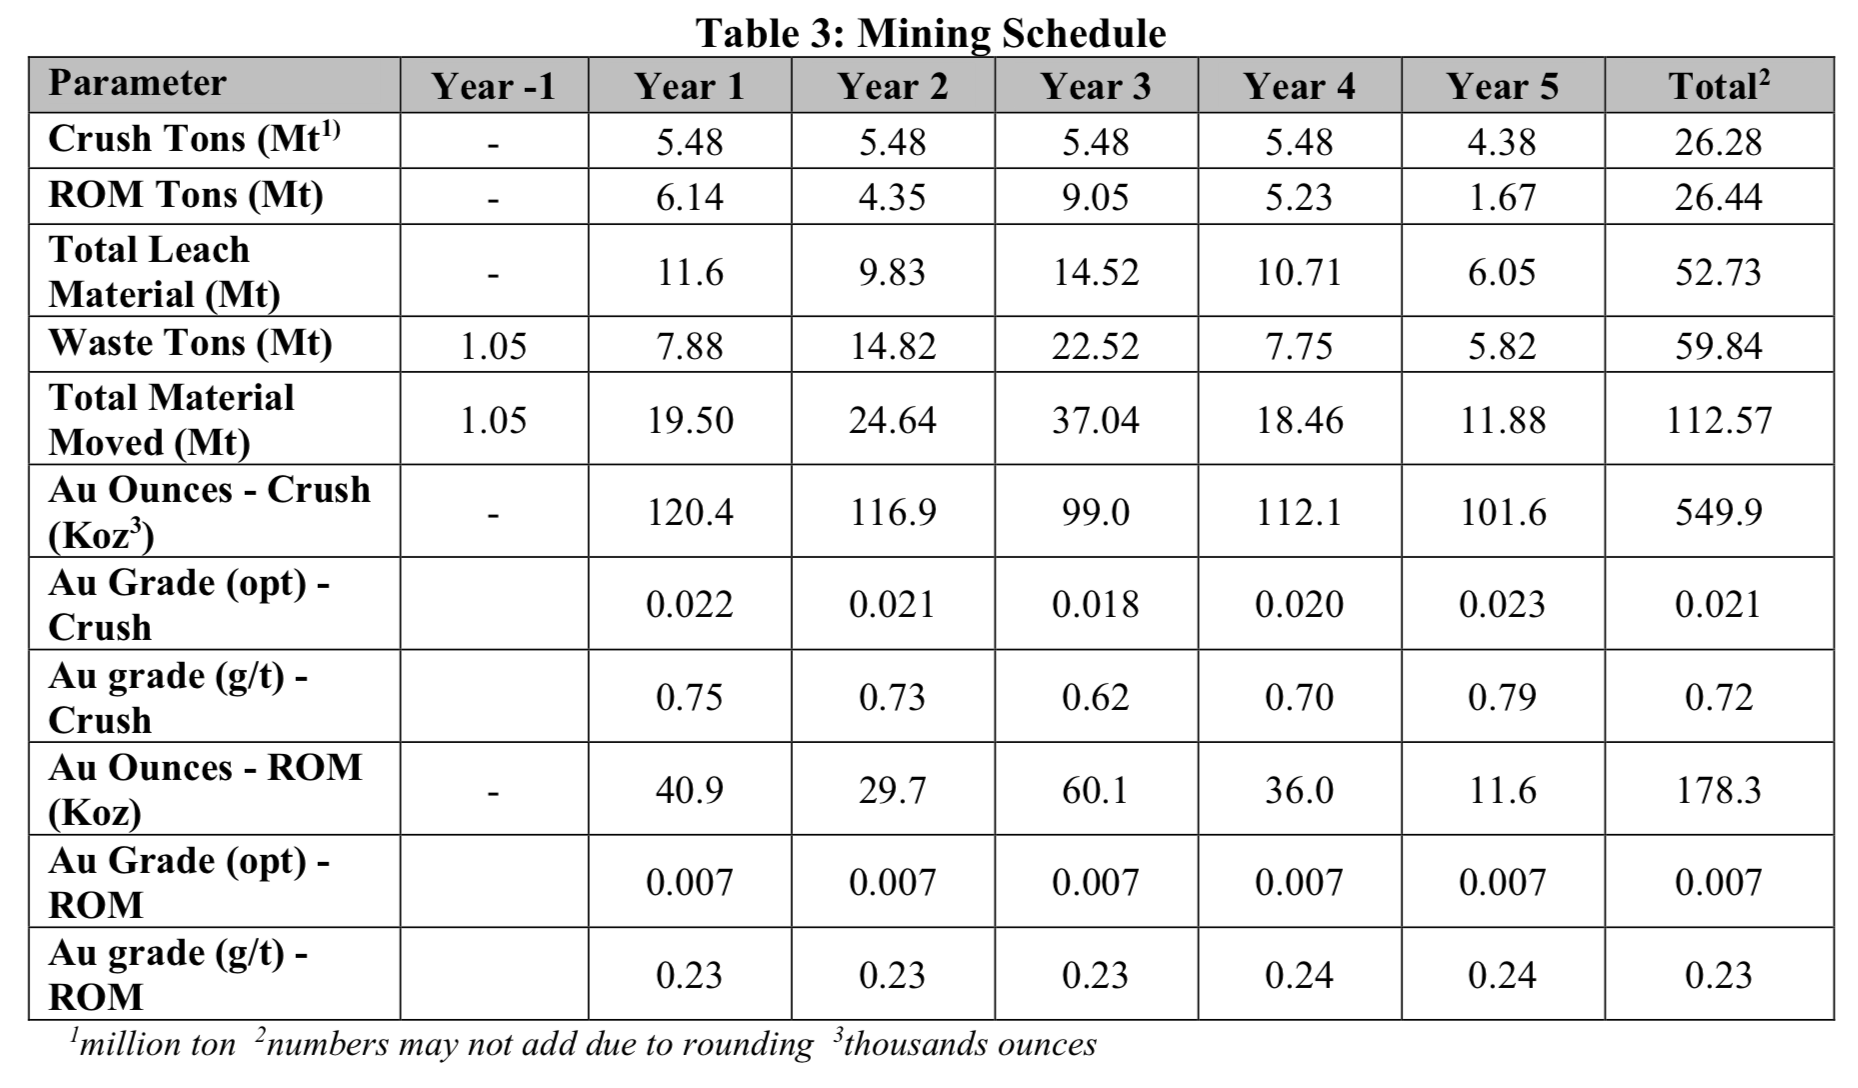 Table 3: Mining Schedule